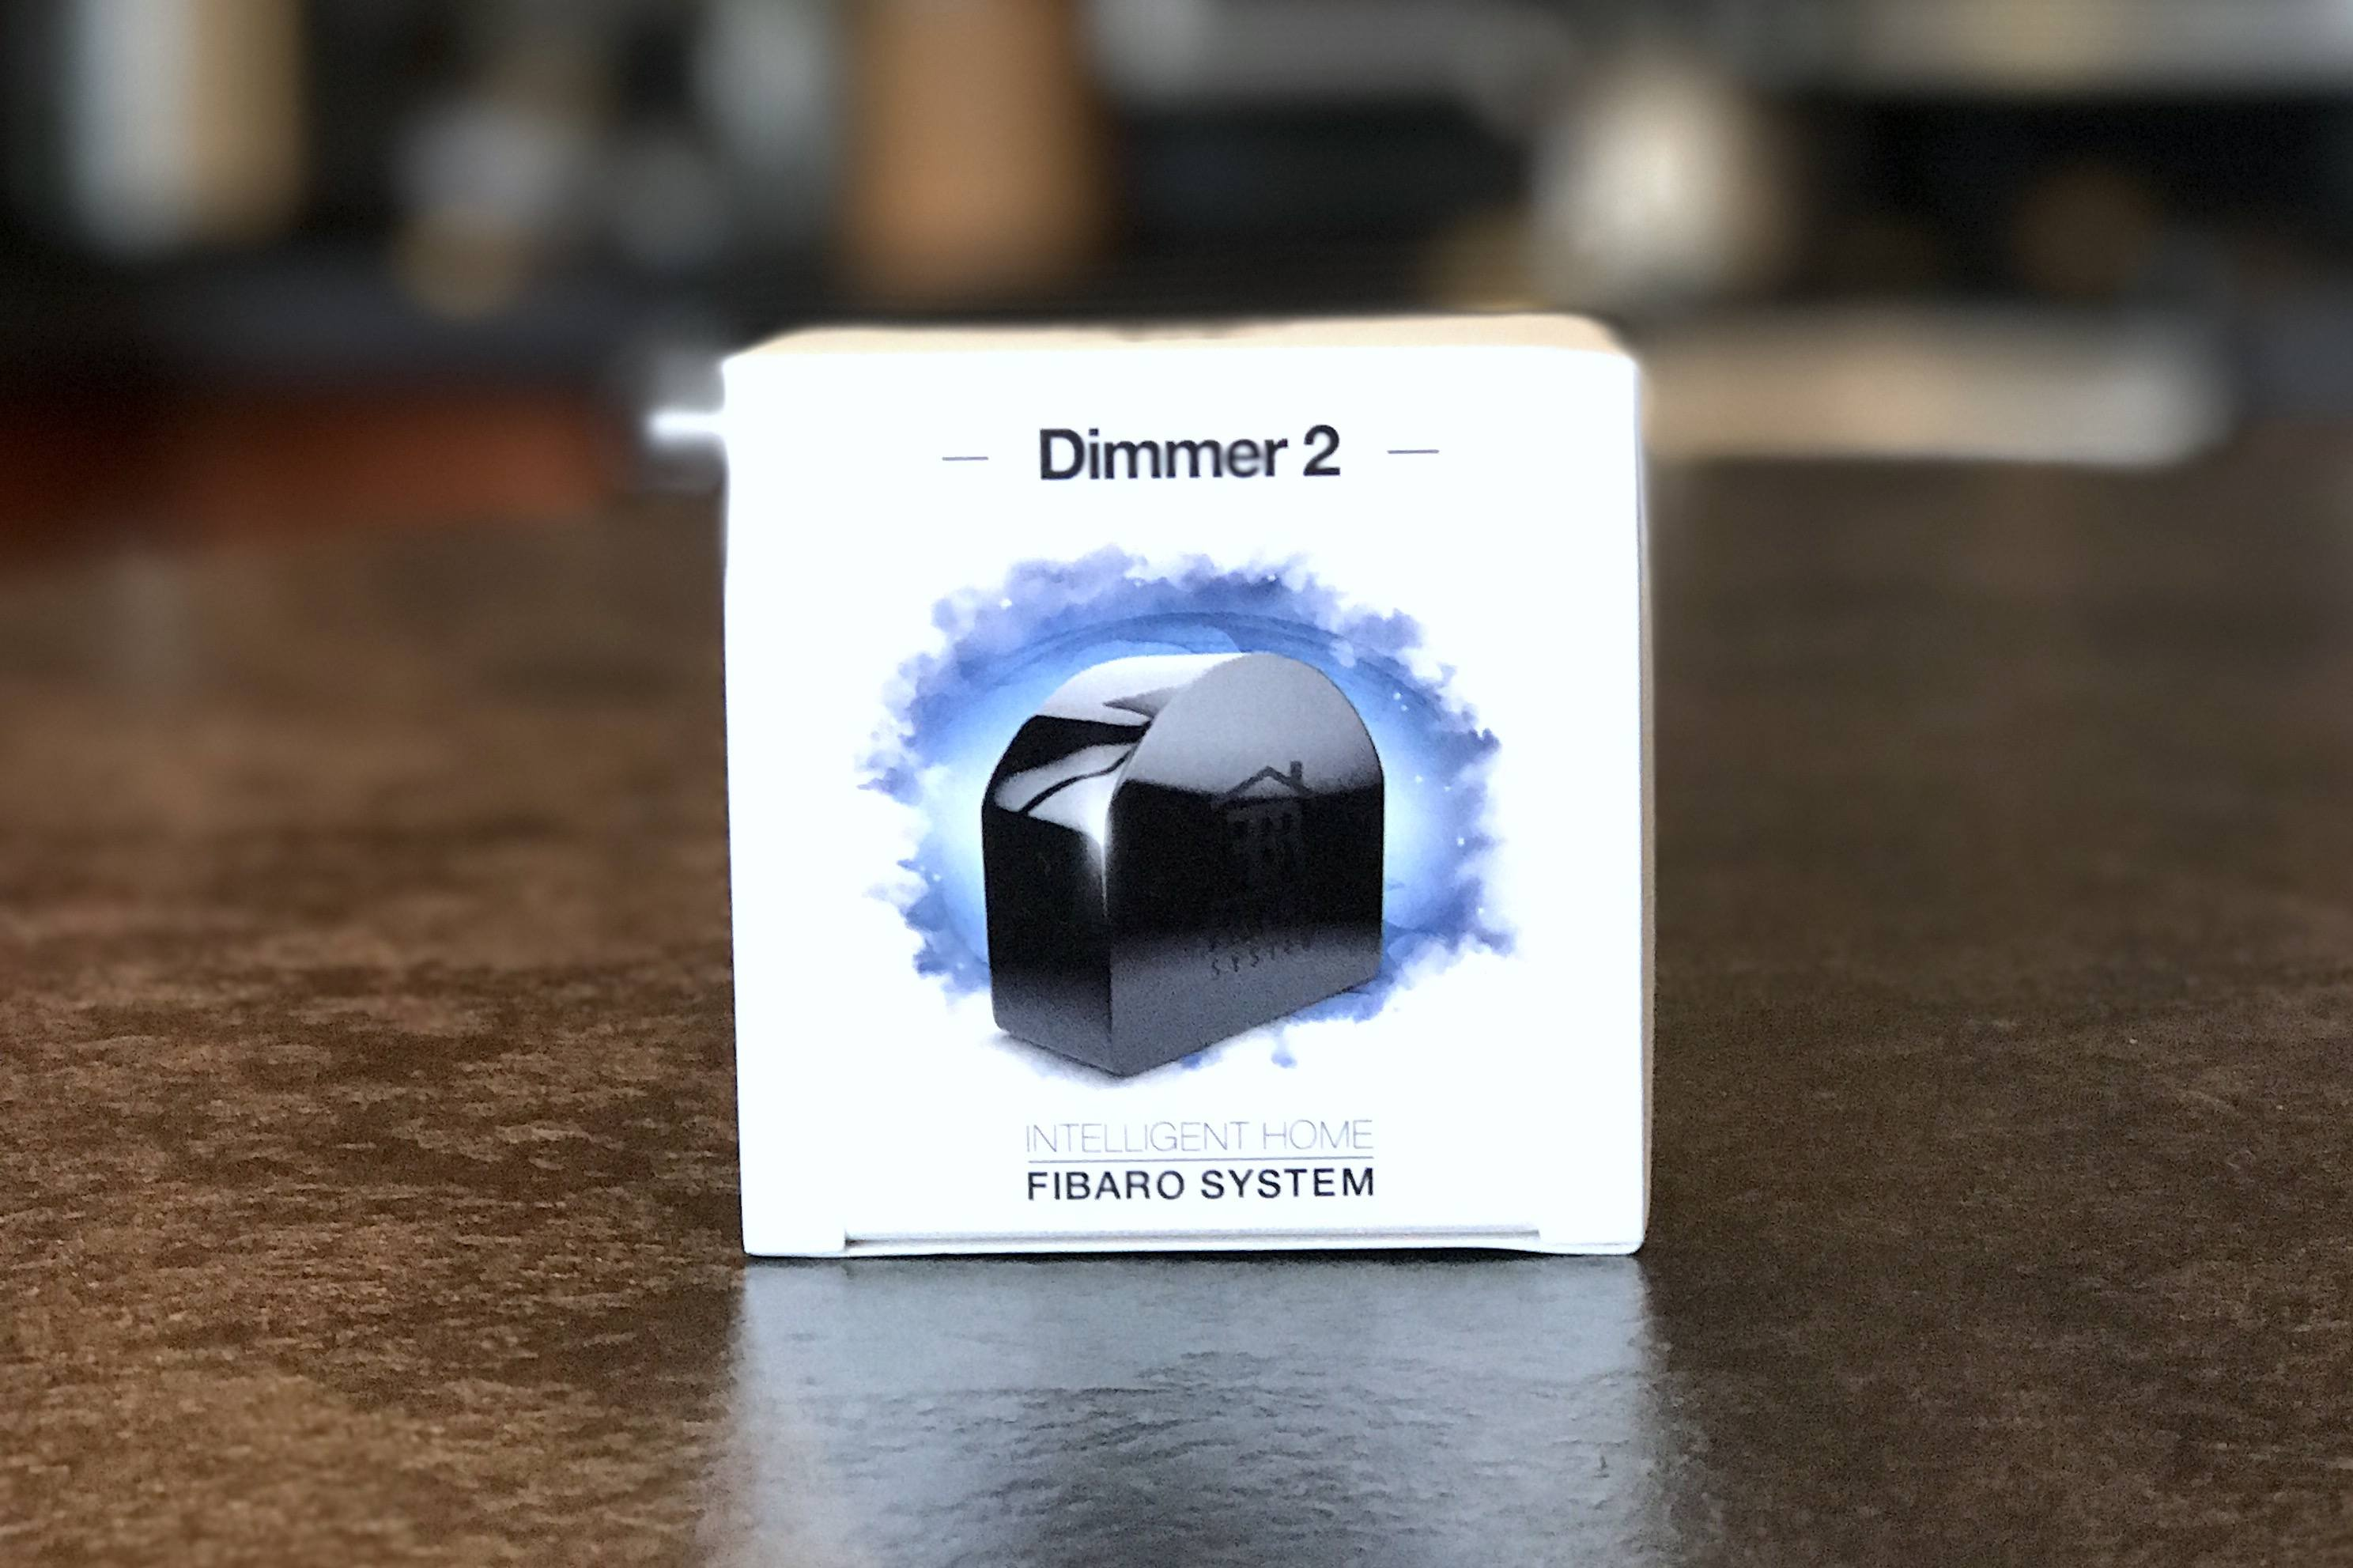 Z-Wave Plus Fibaro Dimmer 2